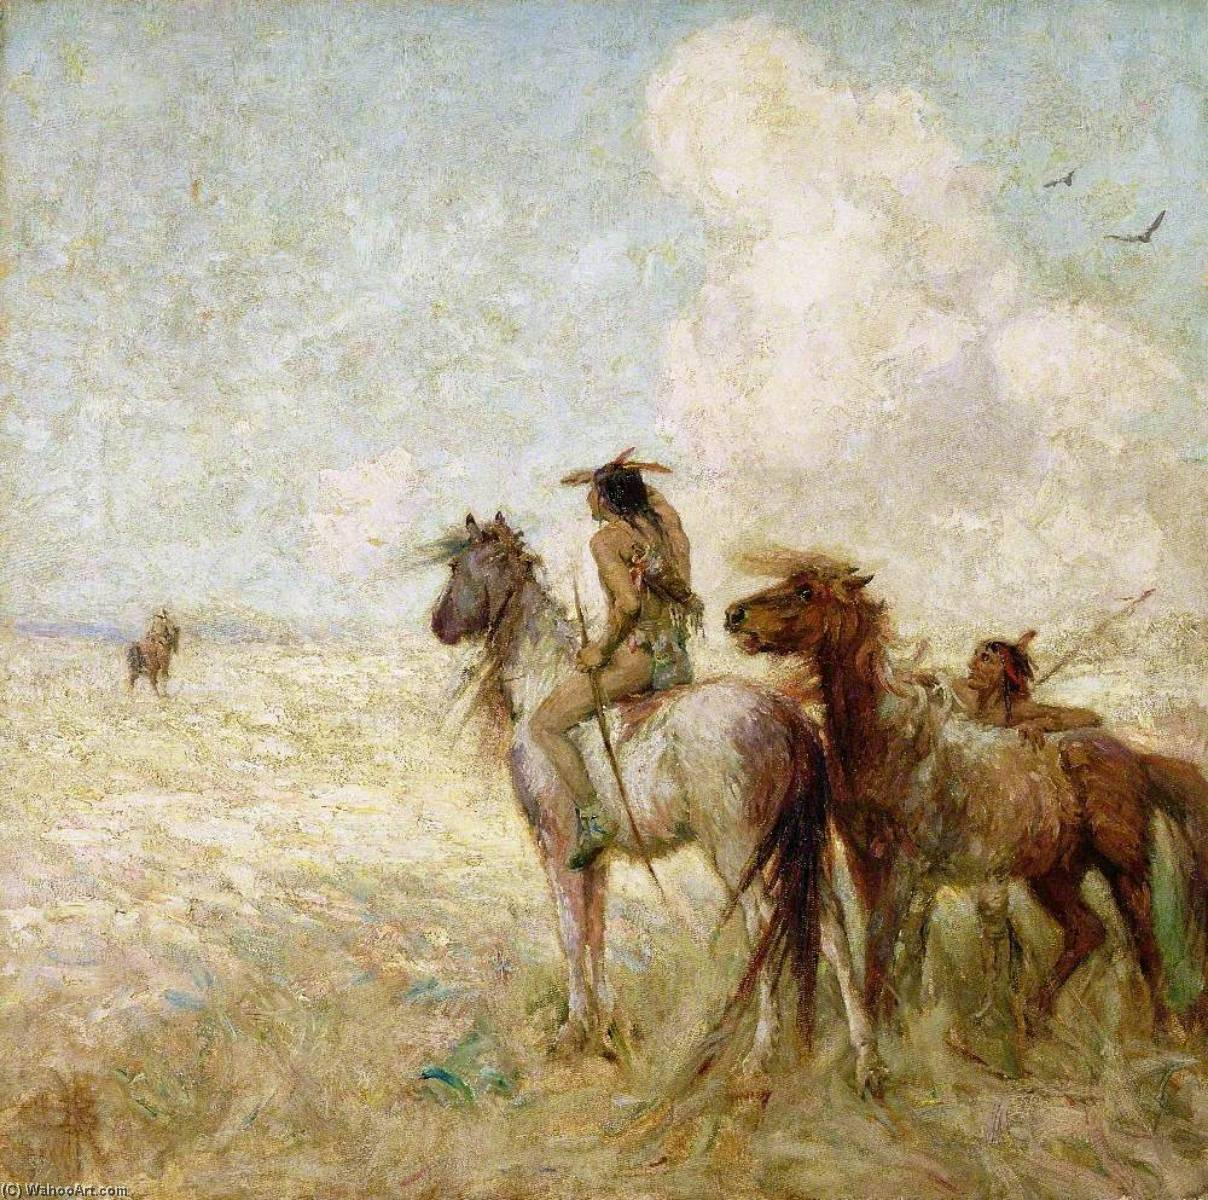 The Bison Hunters, Oil On Canvas by Nathaniel Hughes John Baird (1865-1936)